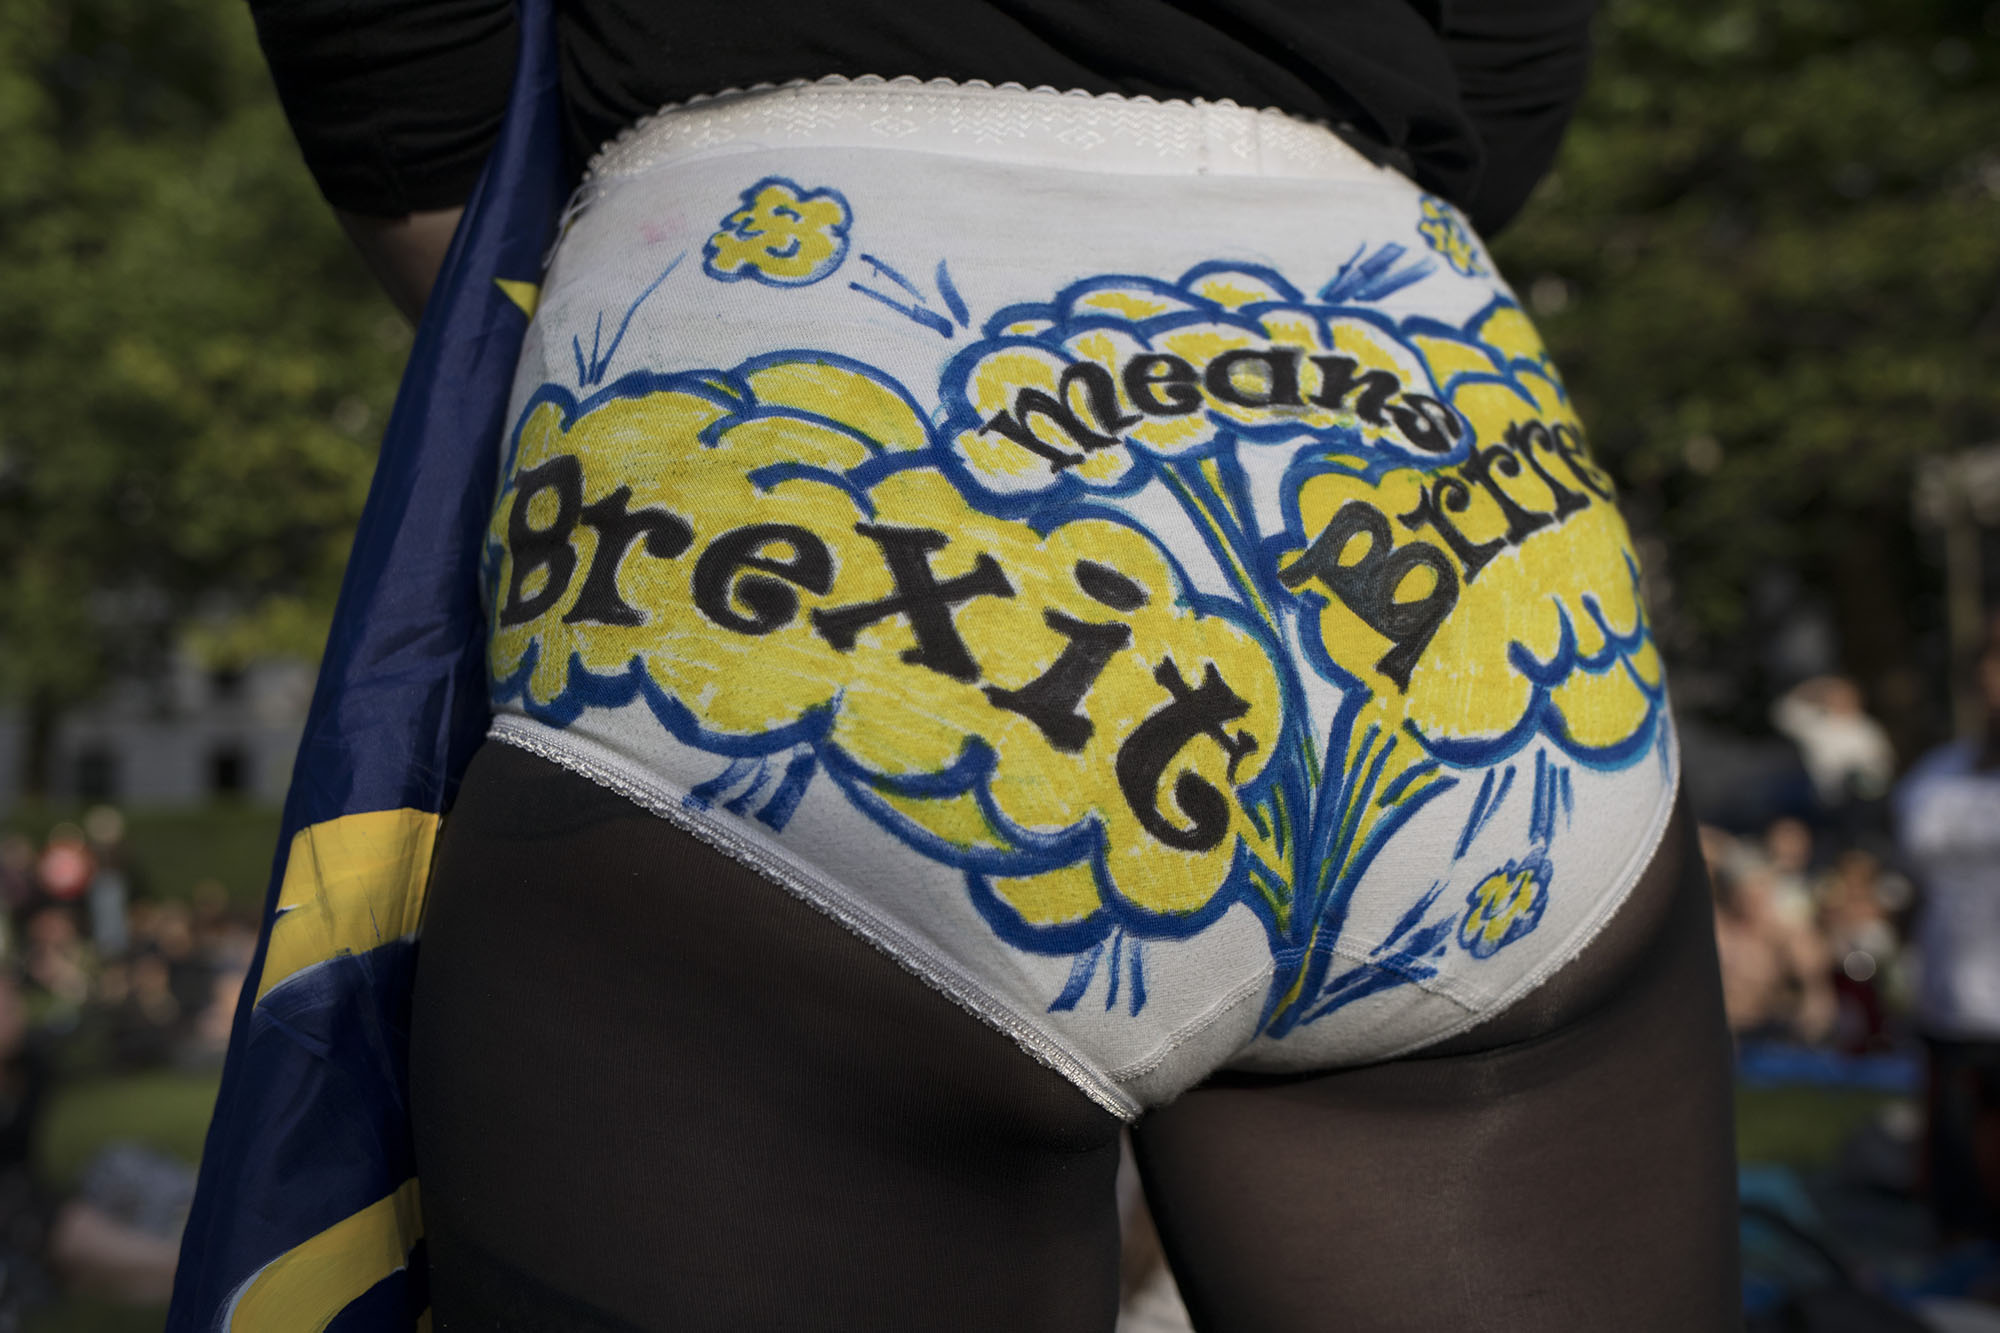 Brexit means Brexit pants at Theresa May's 'Leaving Drinks' protest in St James's Park.